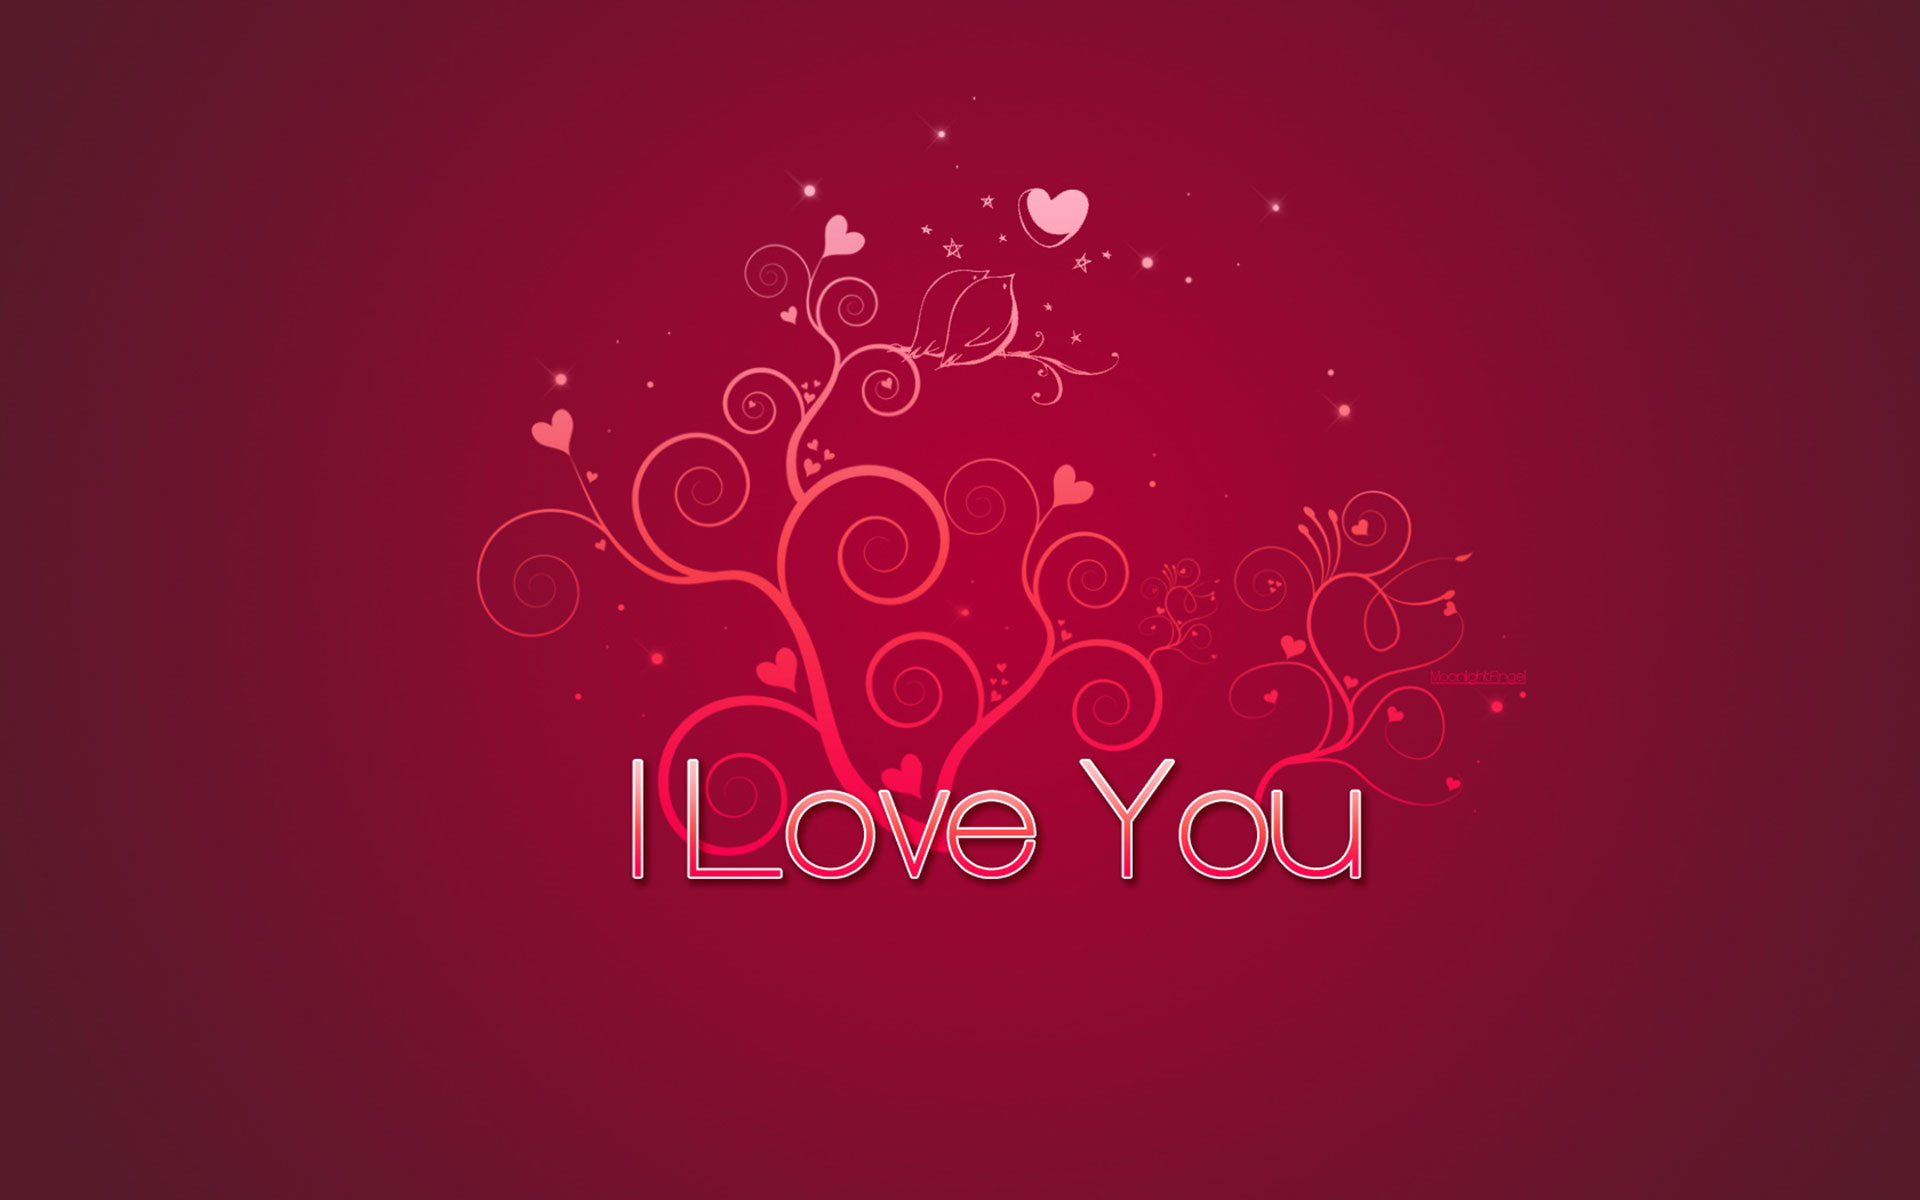 Love Wallpapers Editing : 25+ Free HD I Love You Wallpapers cute I Love You Images